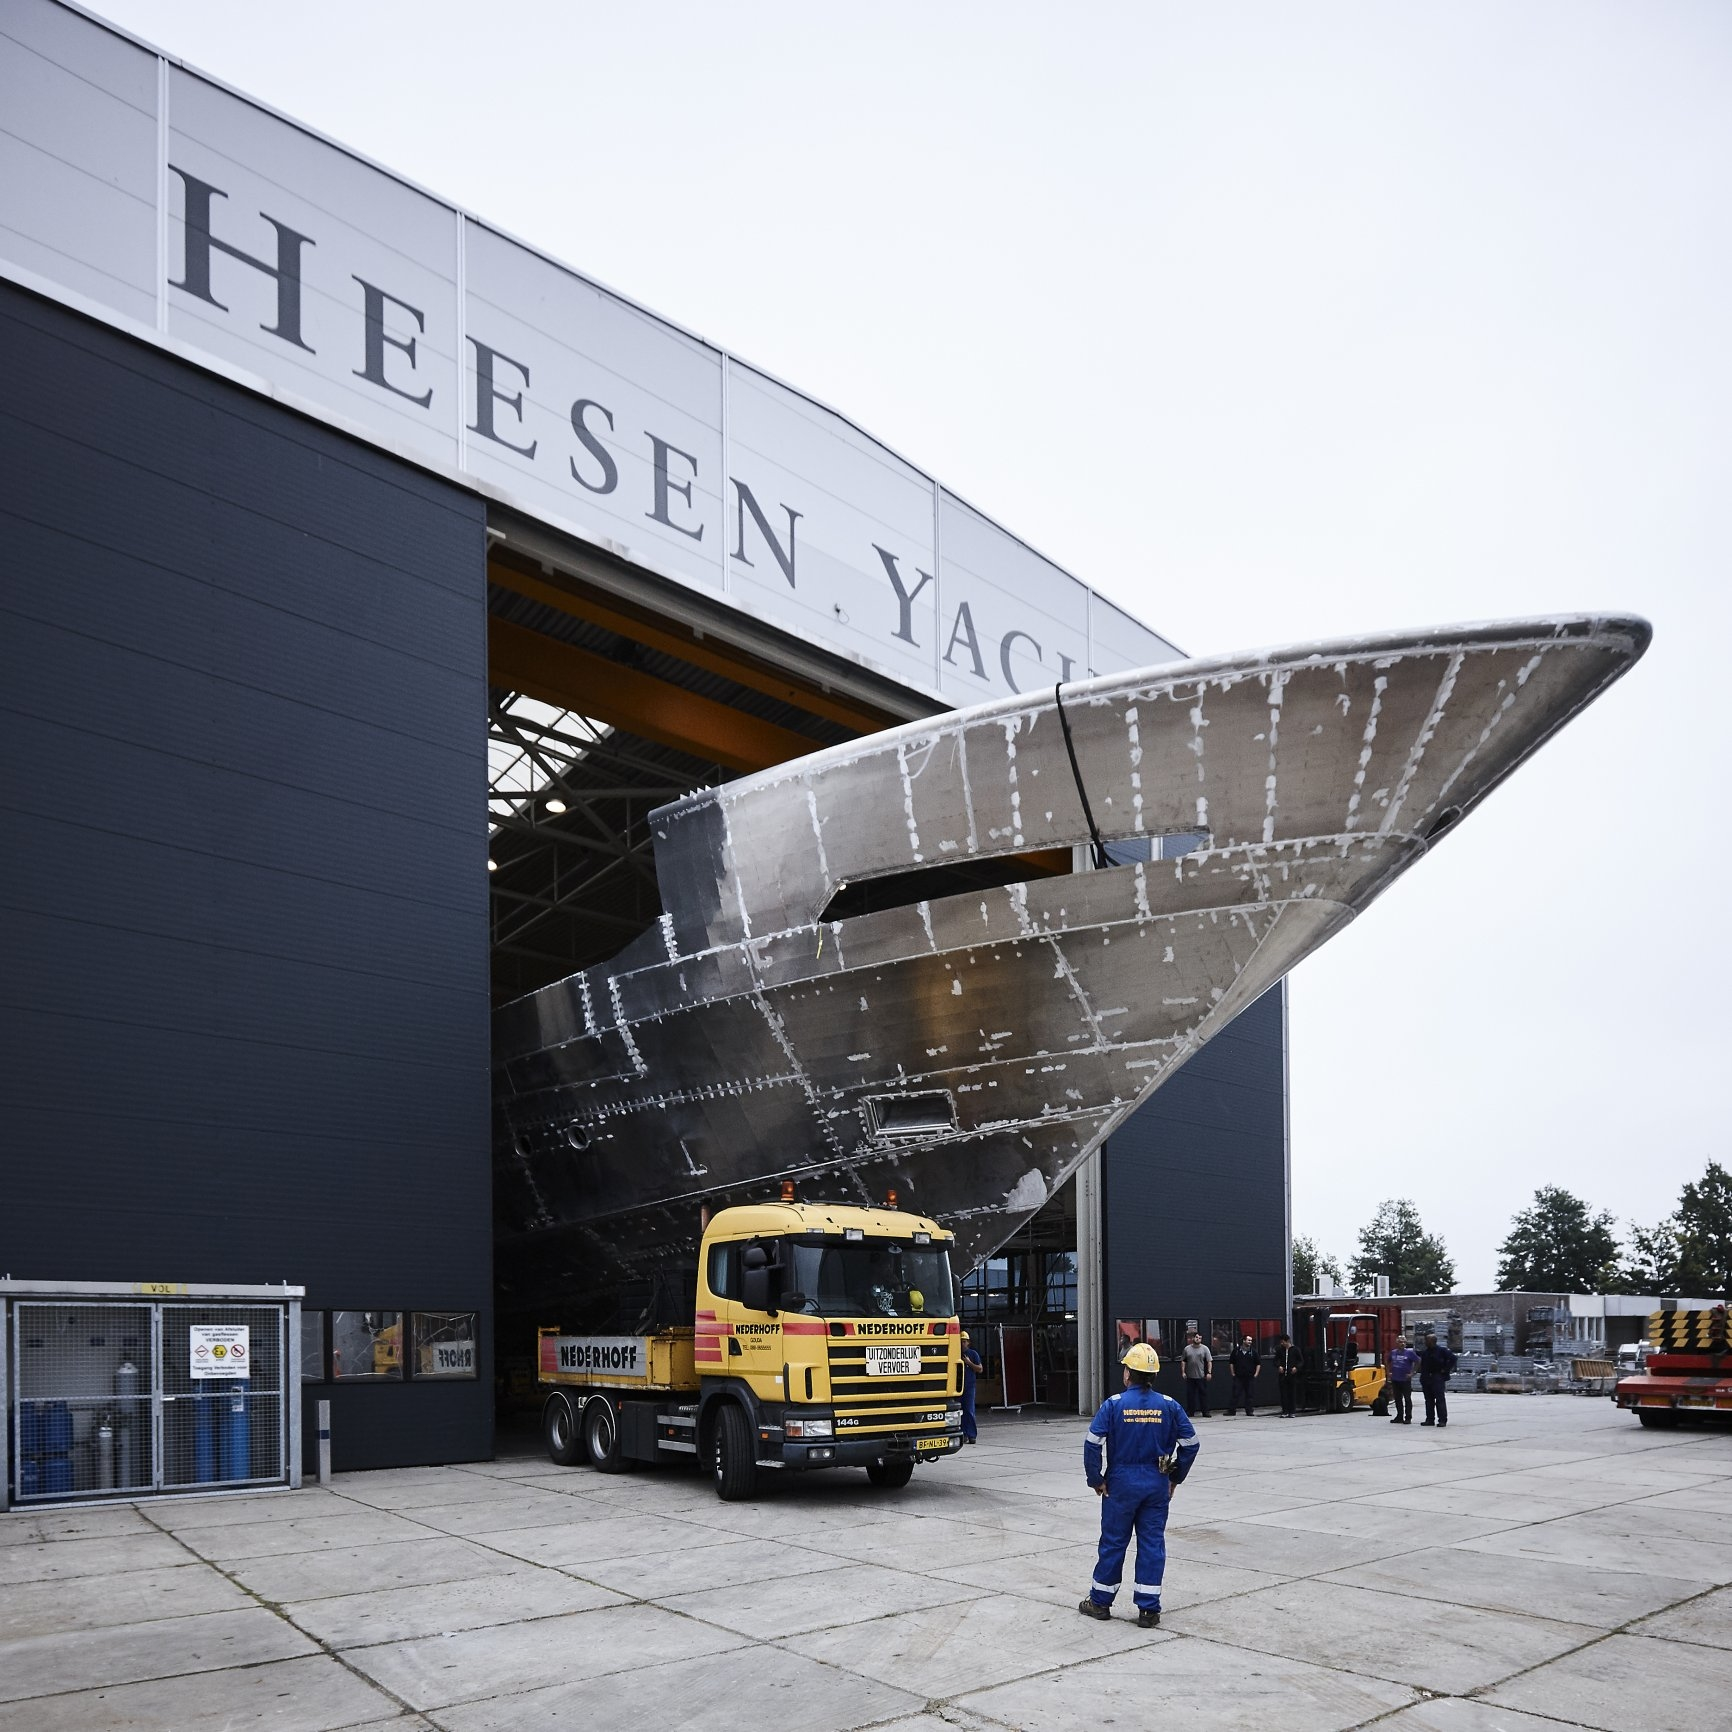 Hull And Superstructure Joined At Heesen Yachts